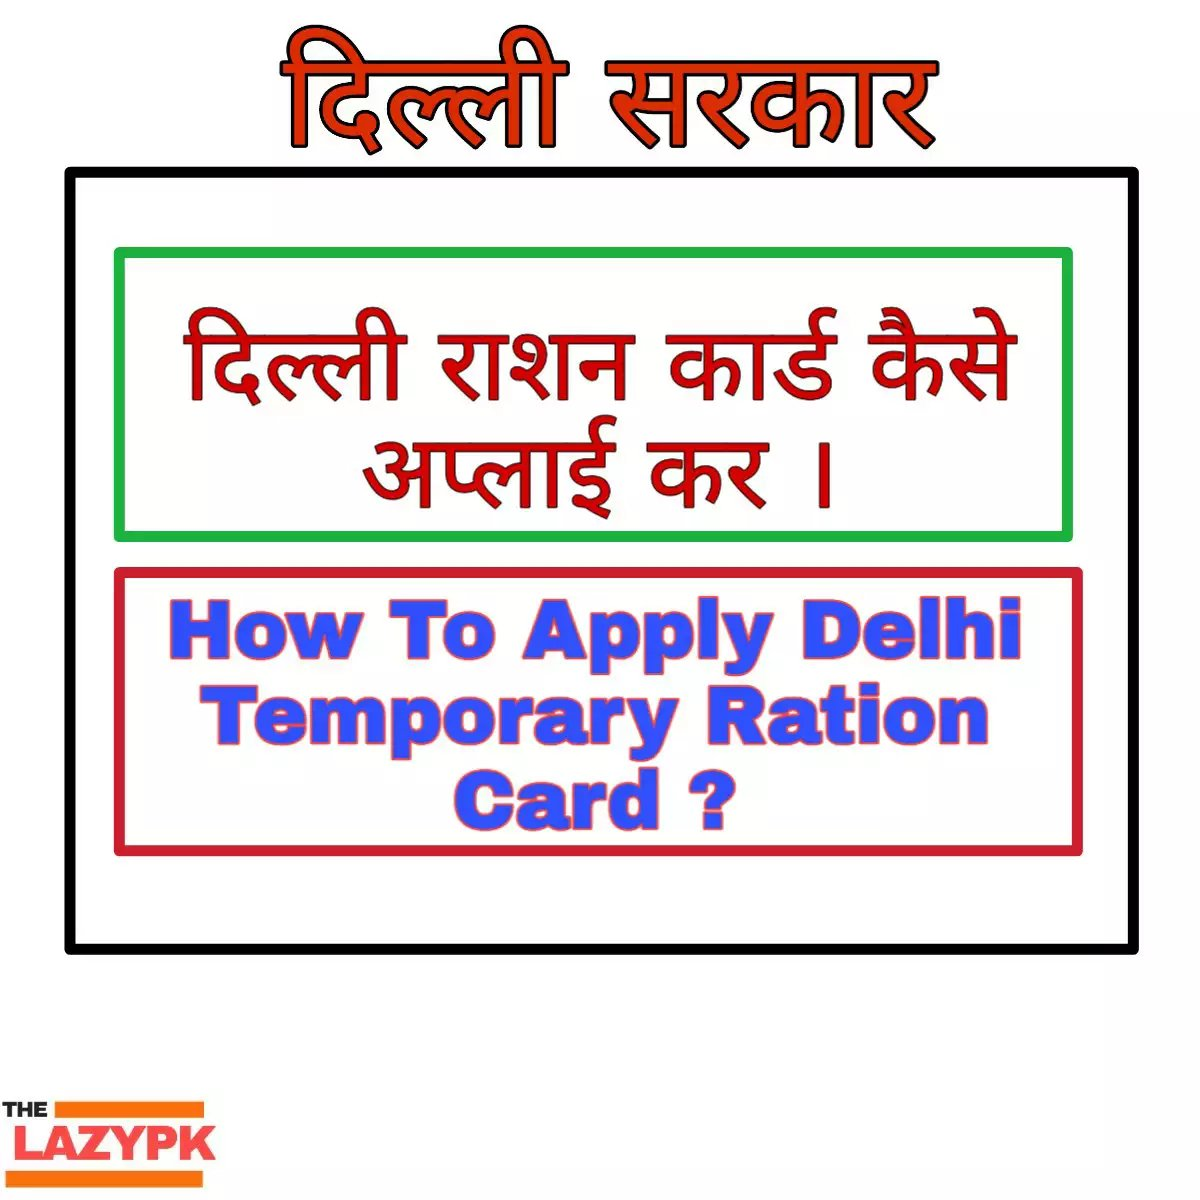 How To Apply Temporary Delhi Ration Card